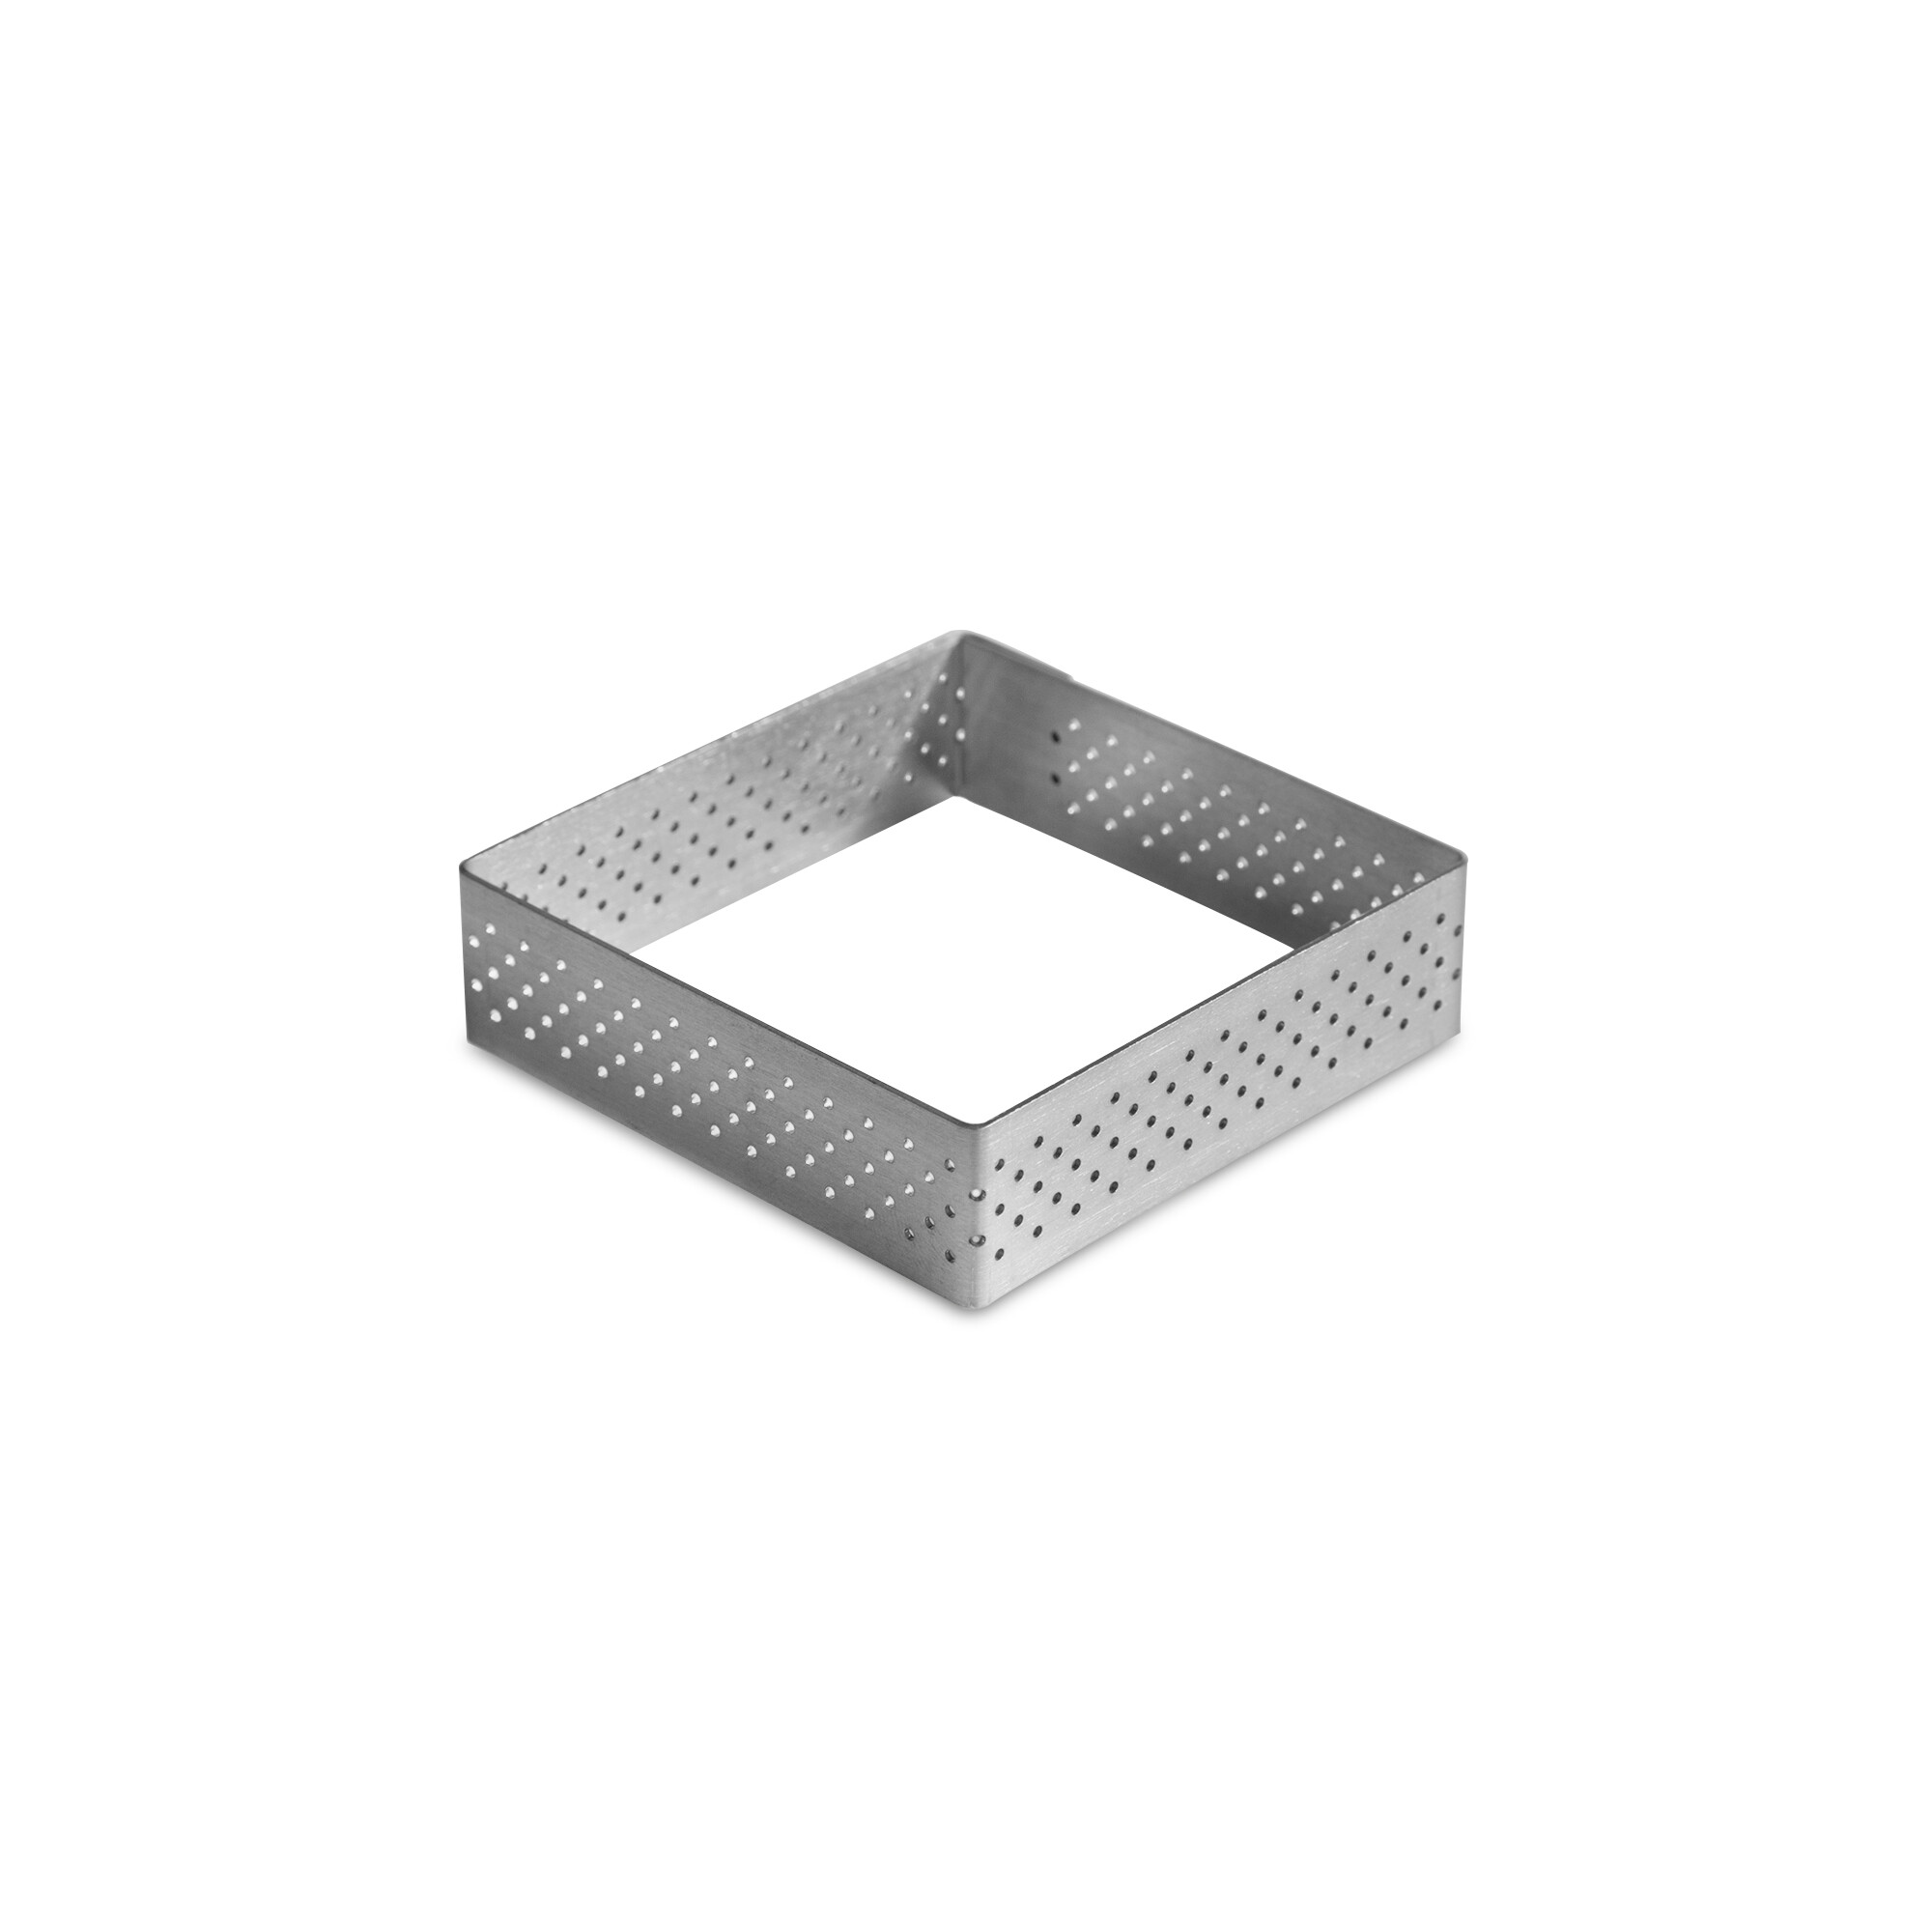 Square - perforated